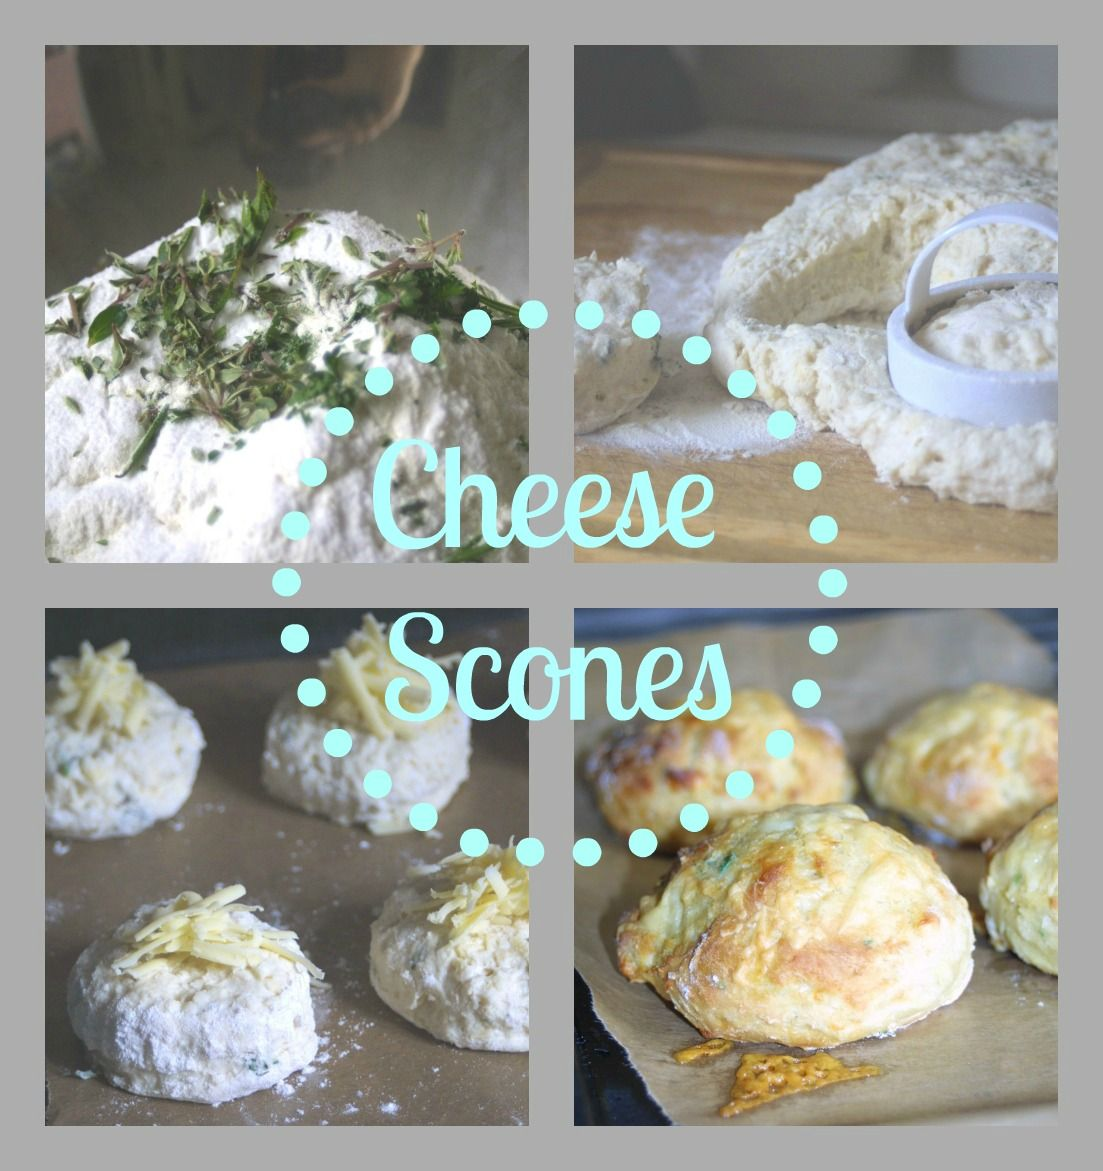 Lemon & Lime Thyme: Cheese Scones